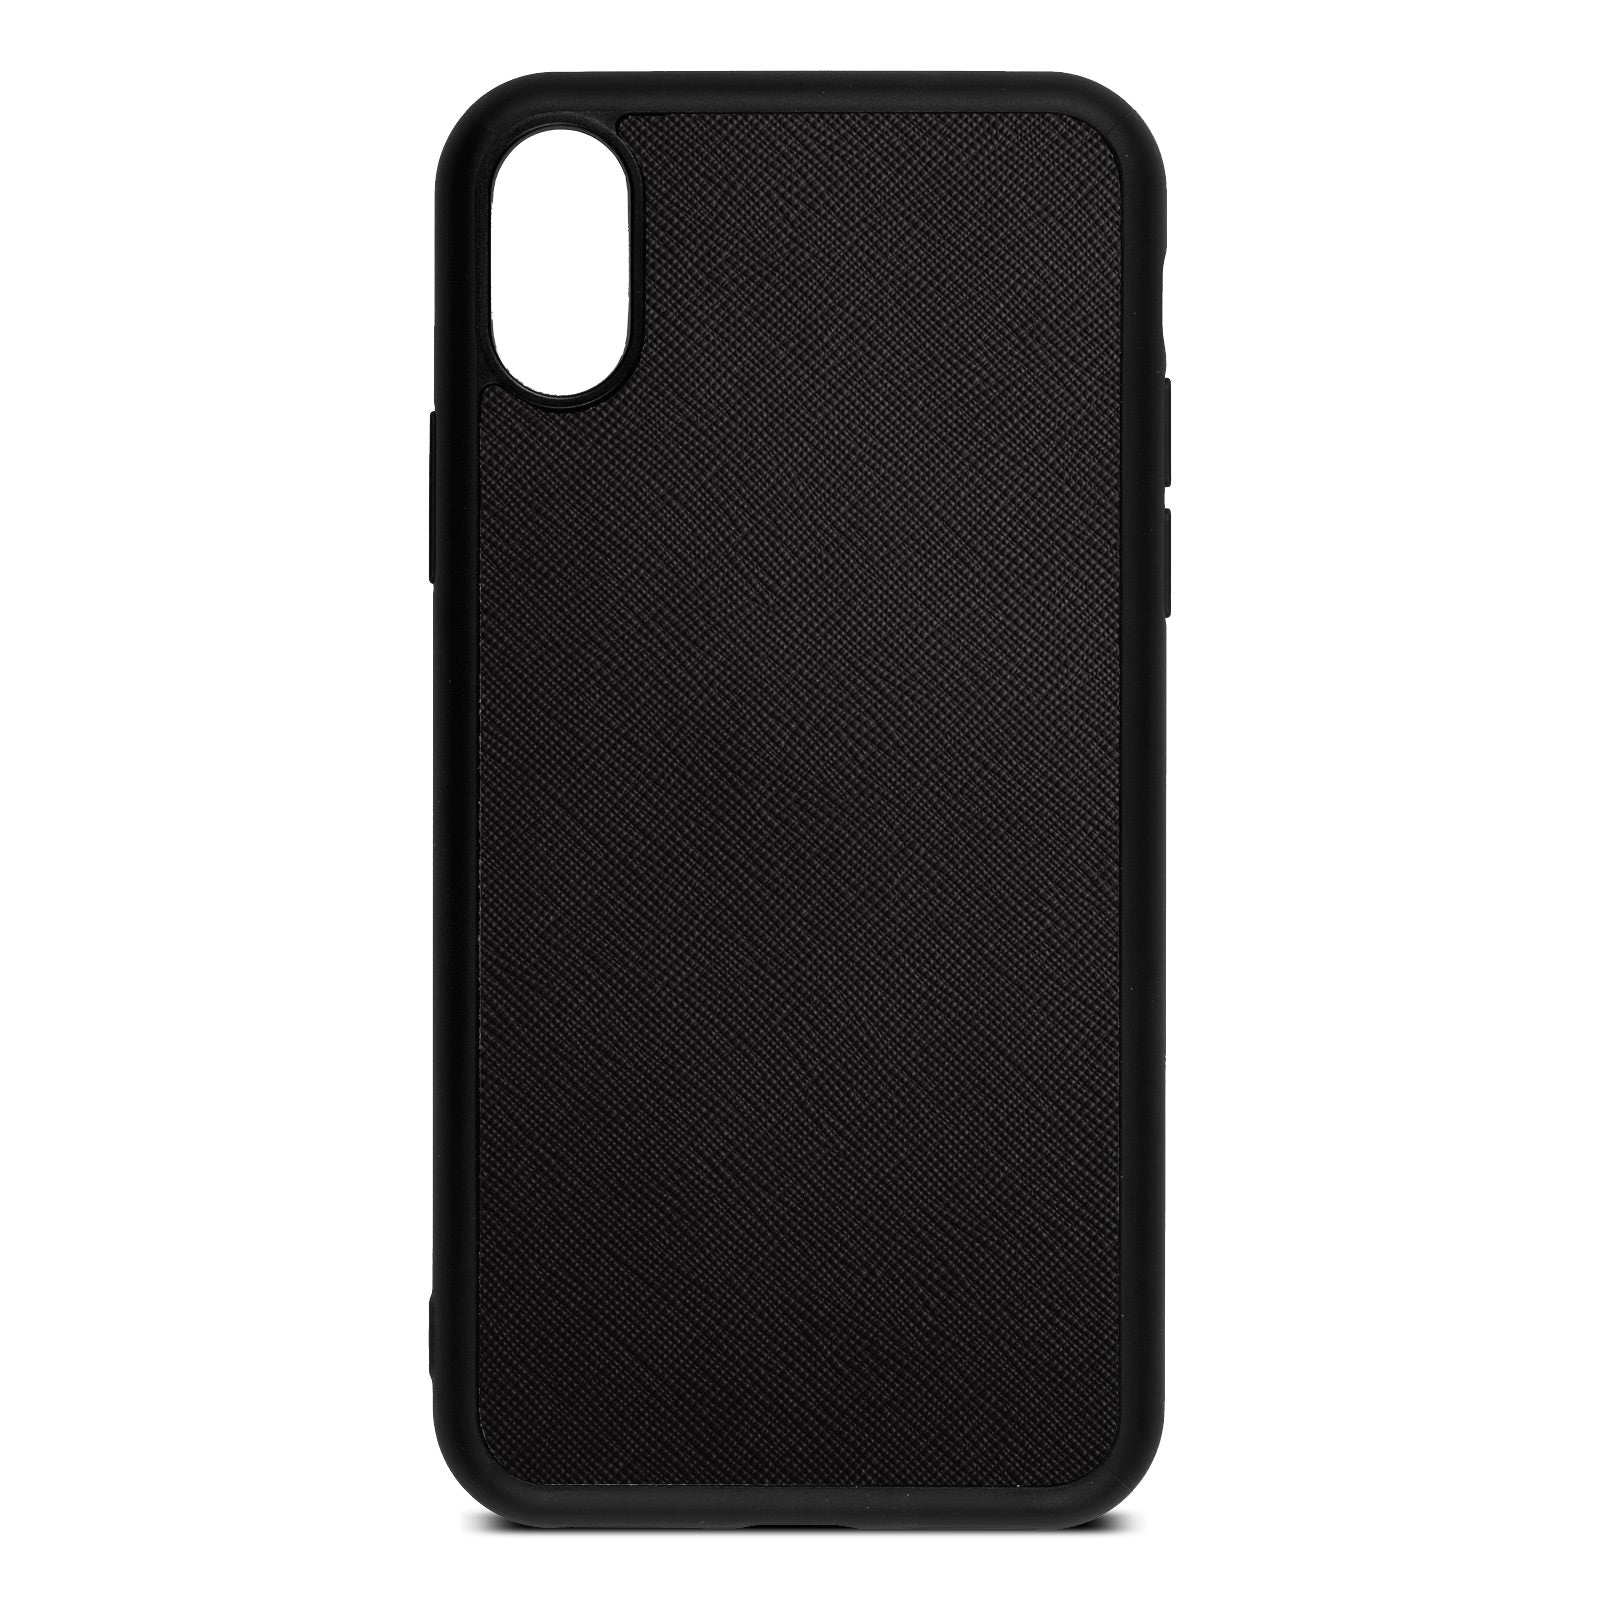 Blank iPhone X Drop Shadow Black Leather Case